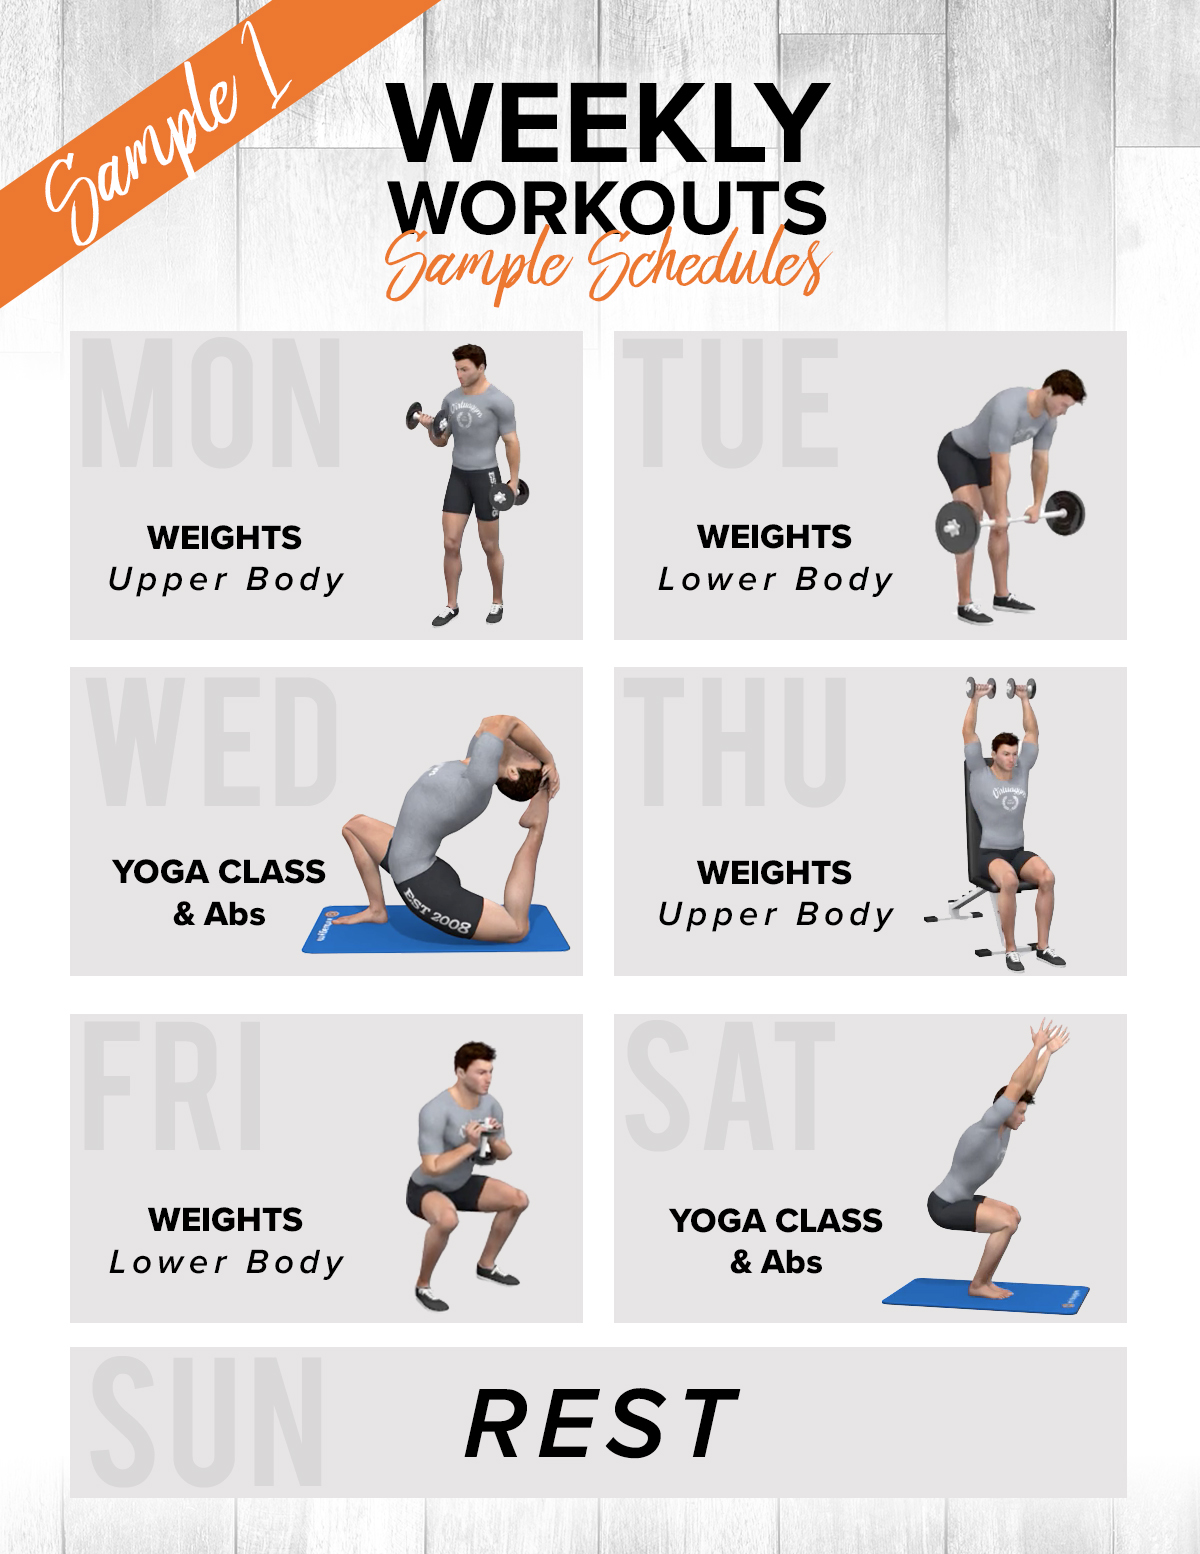 Should You Have A Daily Workout Routine?